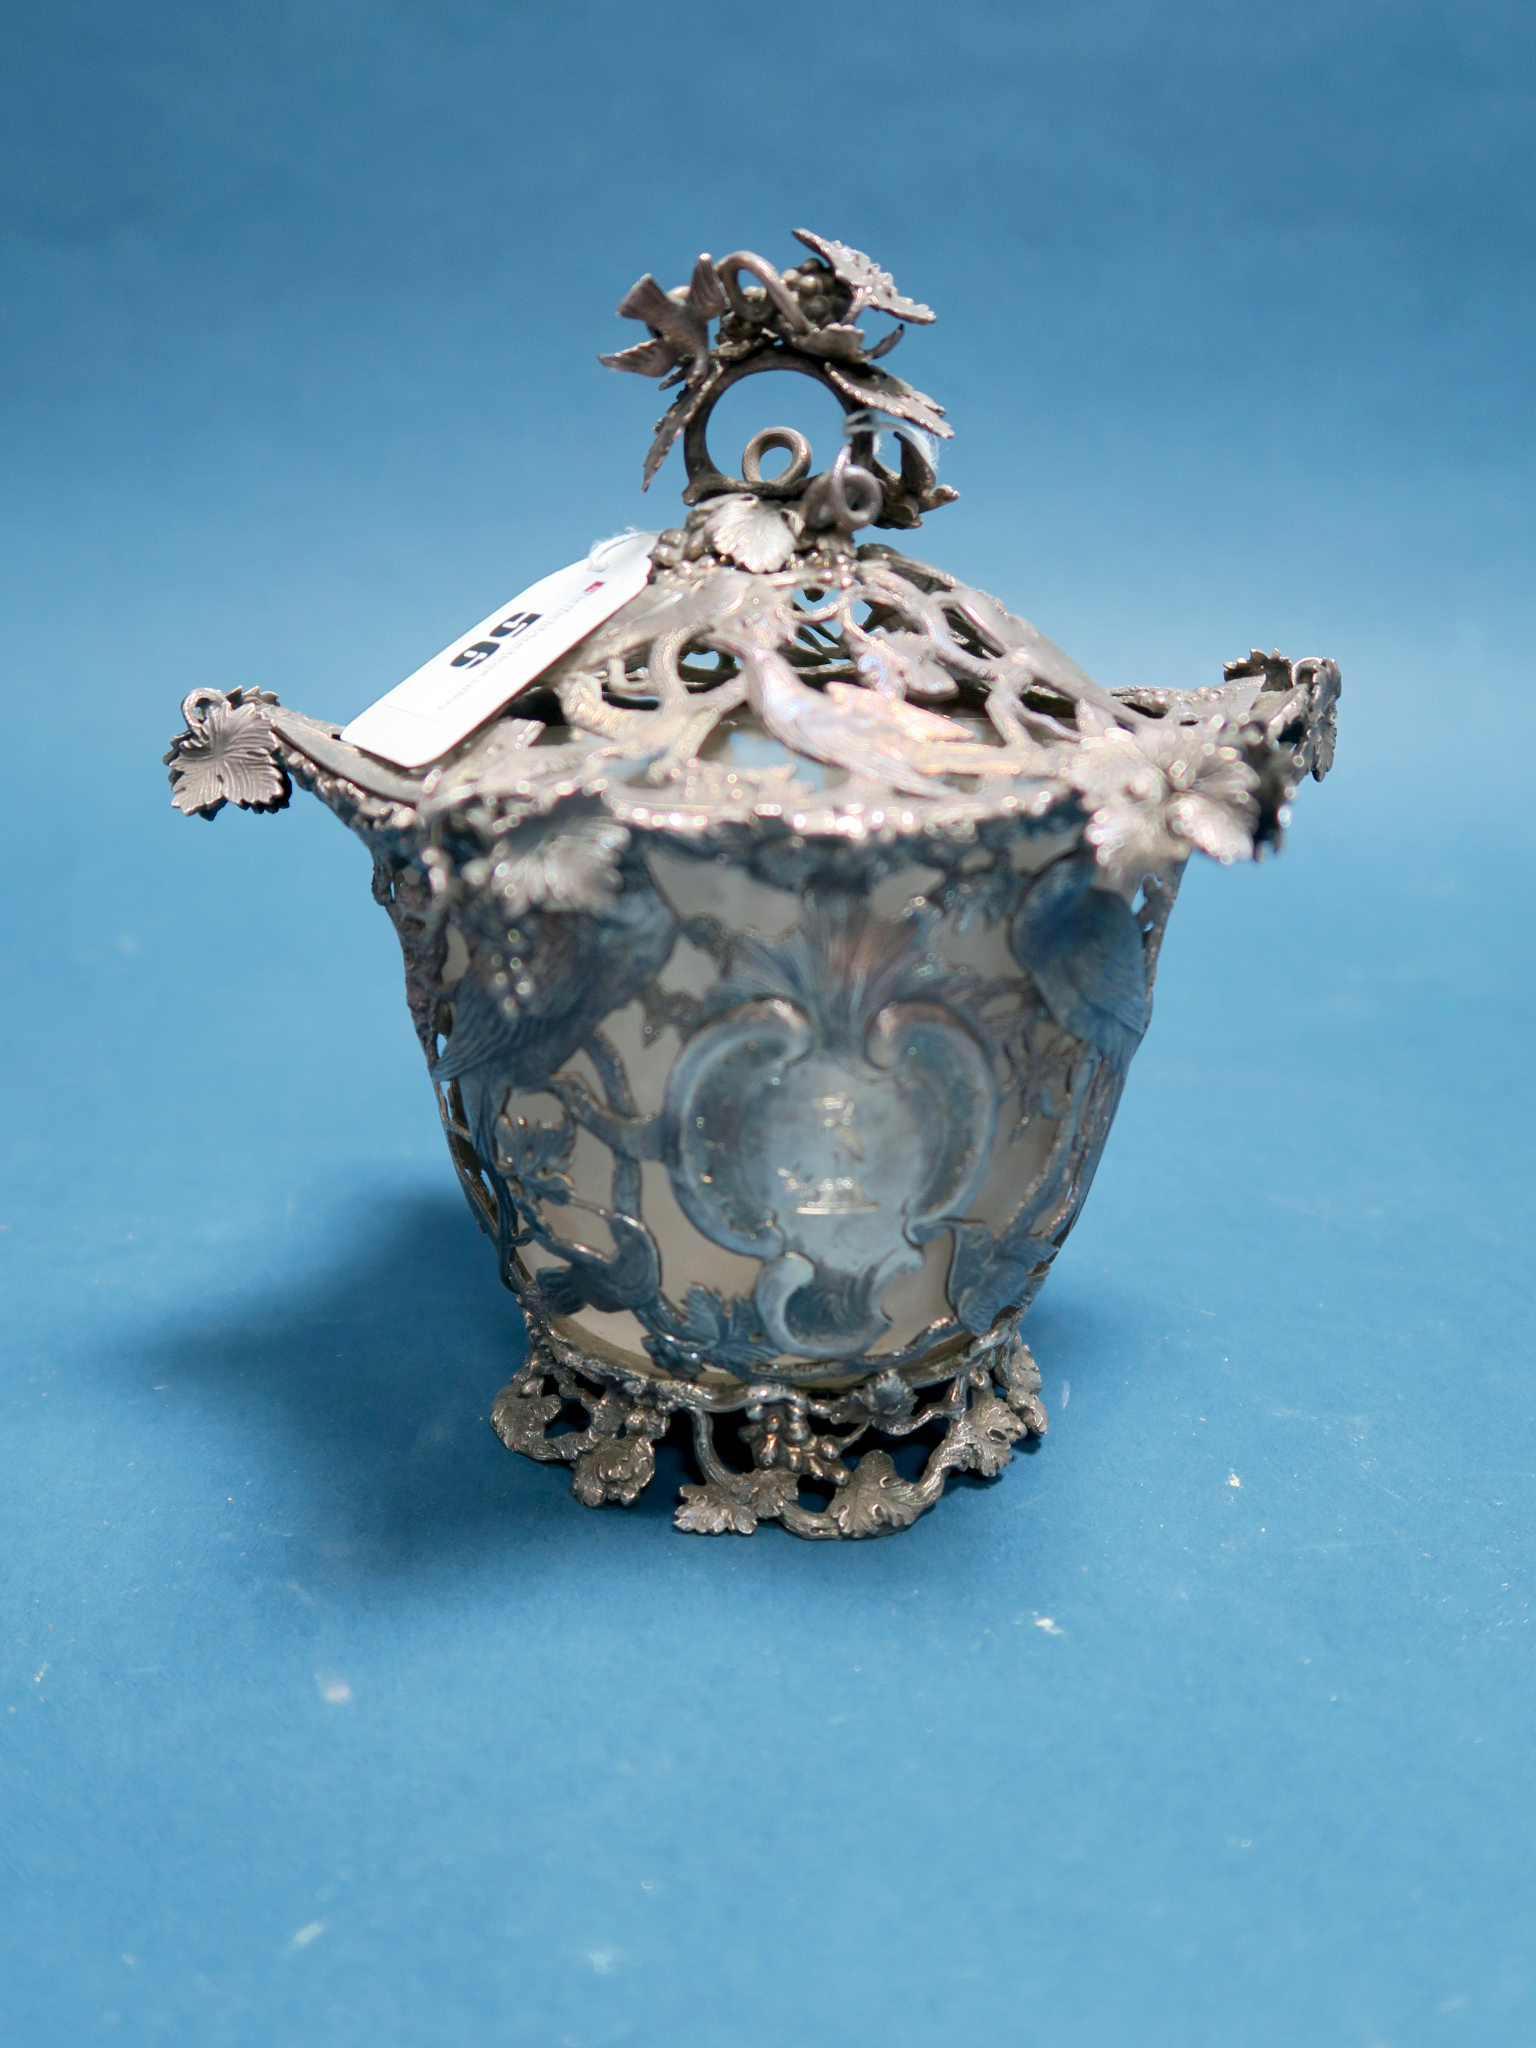 Lot 56 - A Highly Decorative Hallmarked Silver Lidded Pot, Stephen Smith & William Nicholson, of openwork